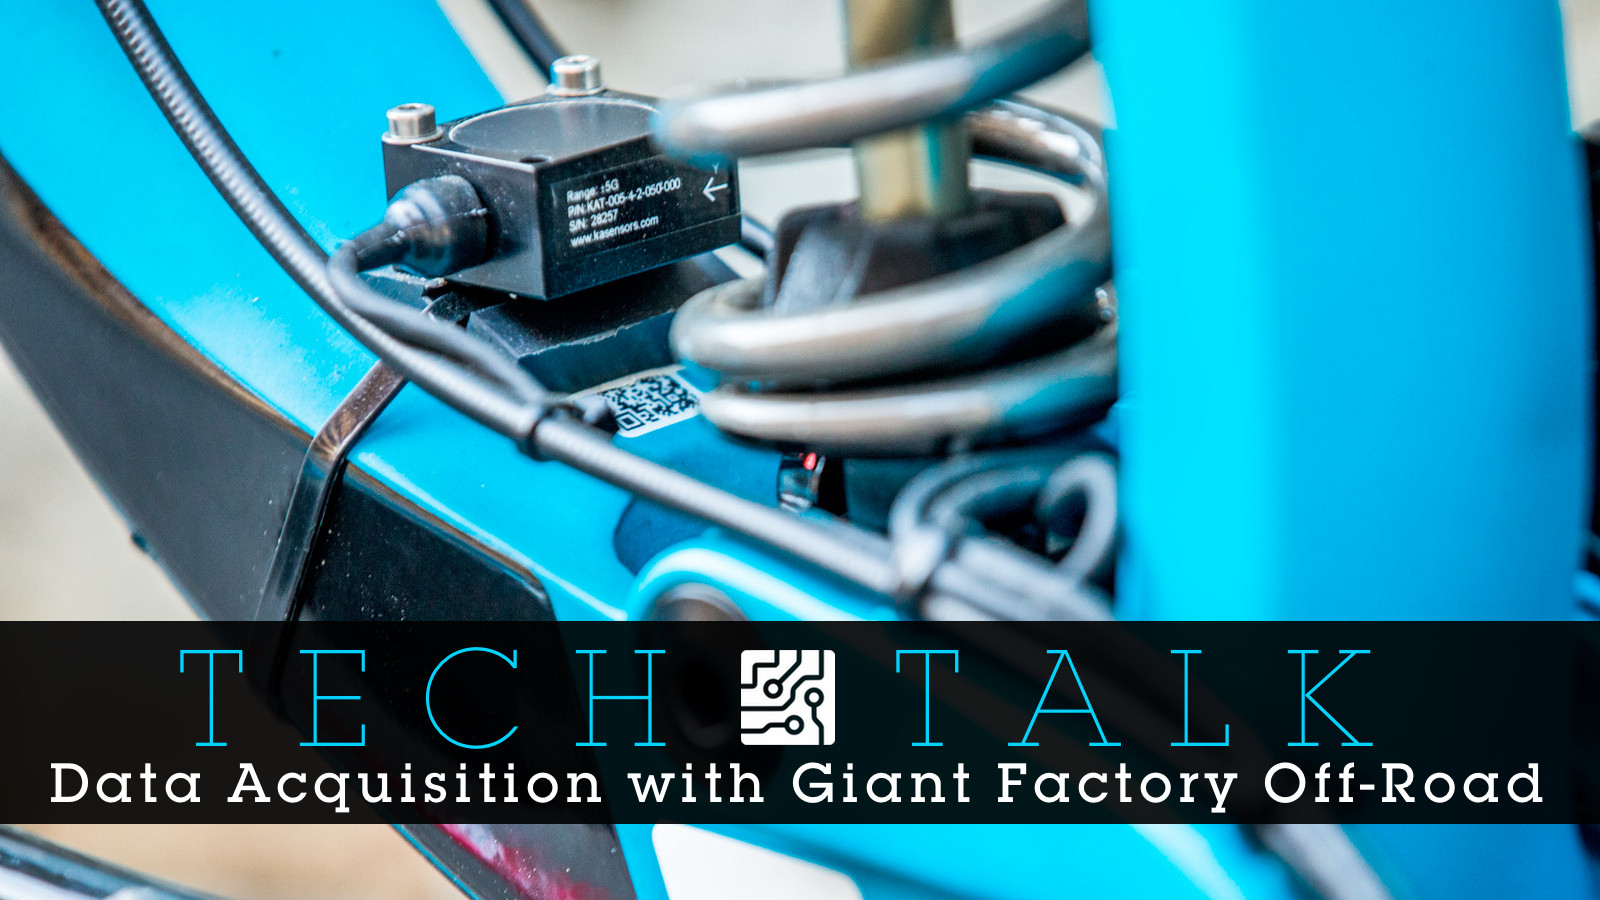 TECH TALK: Giant Factory Off-Road's Dave Garland on Data Acquisition and Bike Set Up